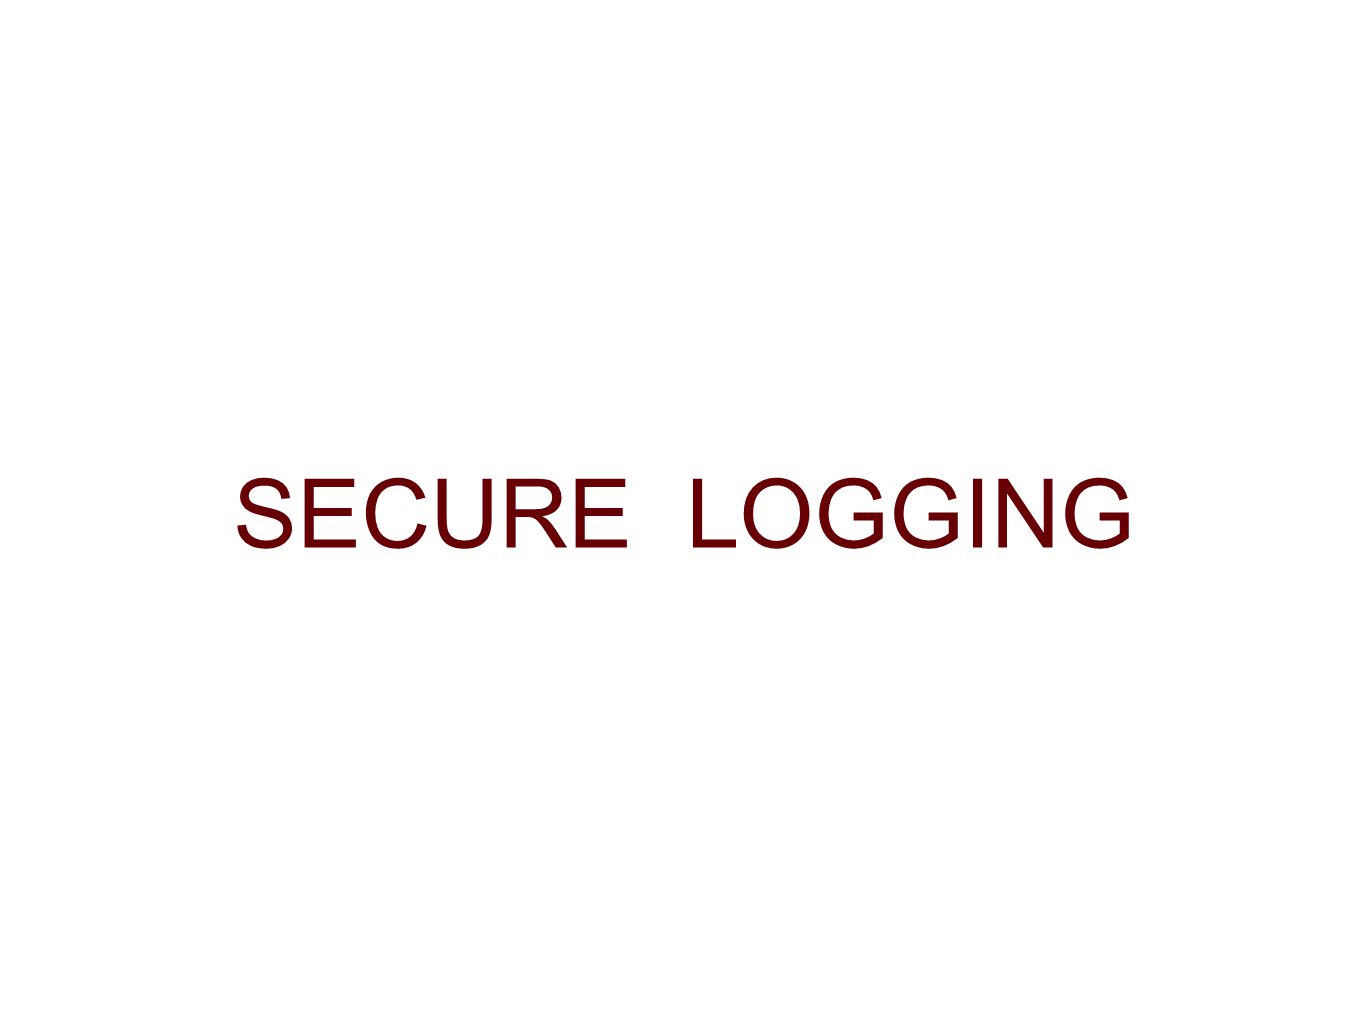 SECURE LOGGING